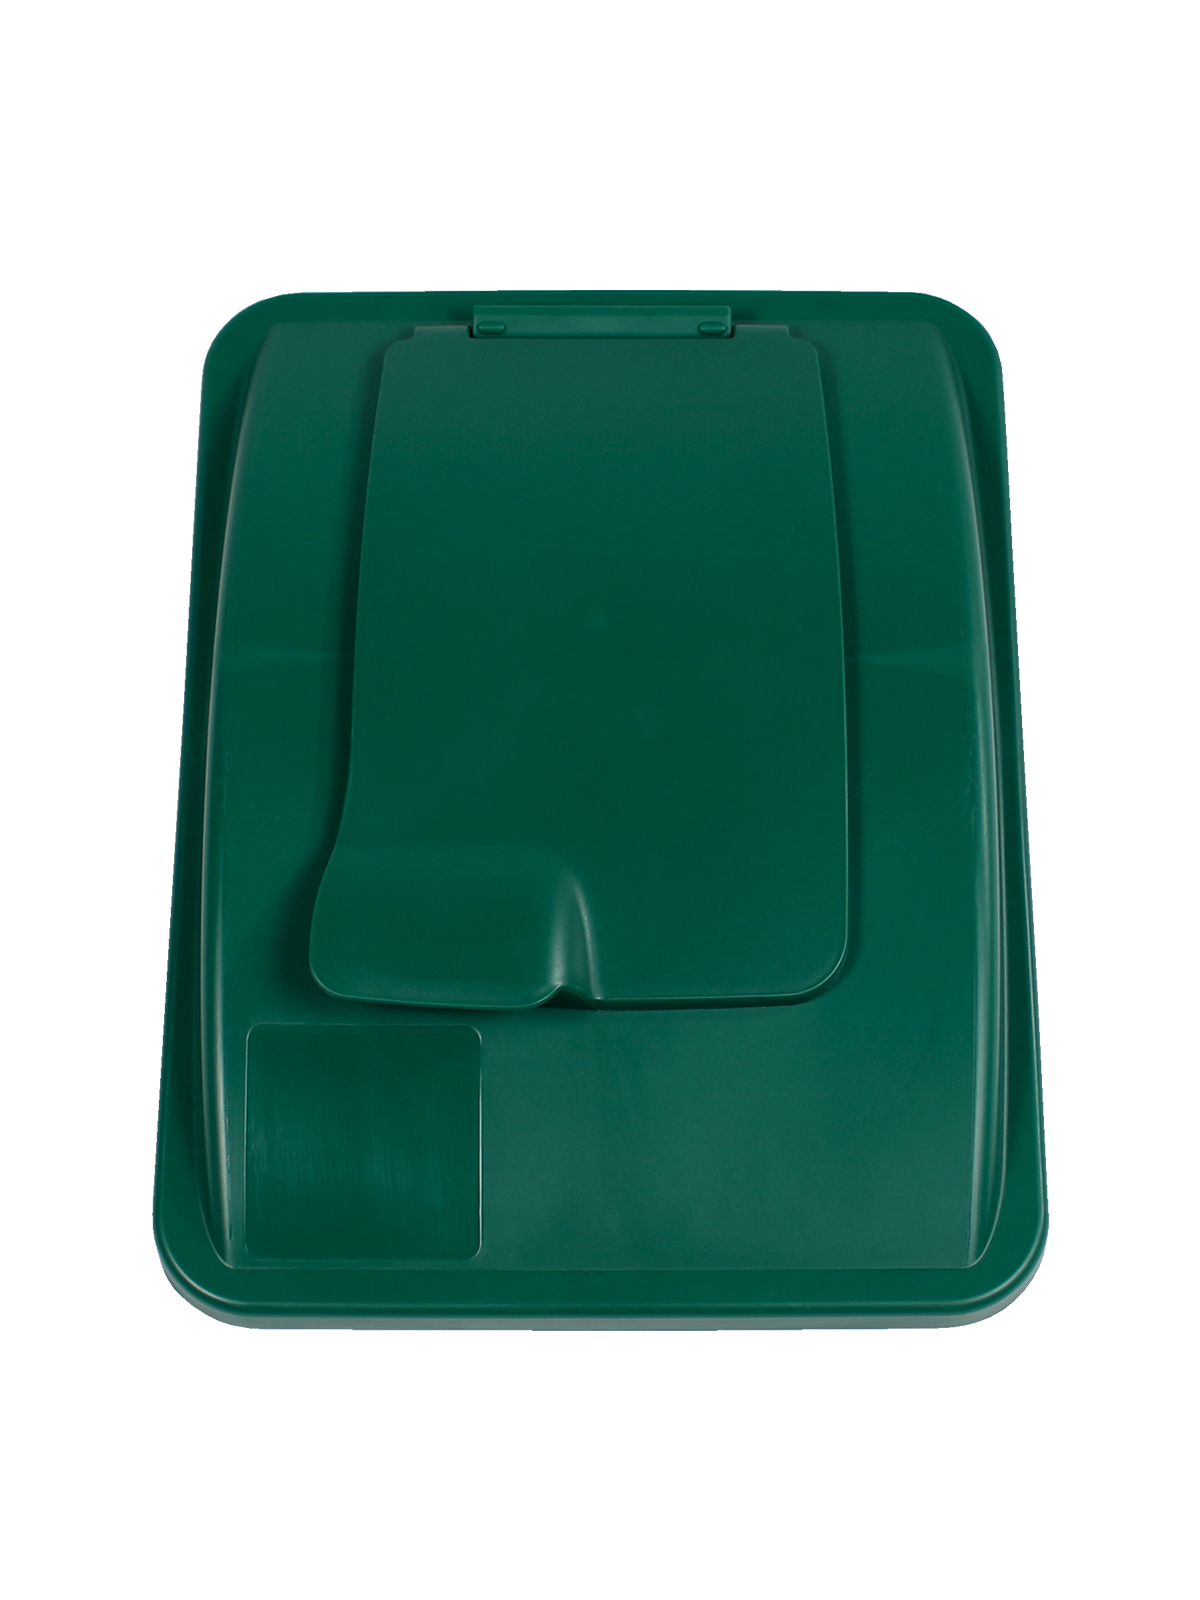 WASTE WATCHER® XL - LIFT LID - SOLID OPENING - DARK GREEN title=